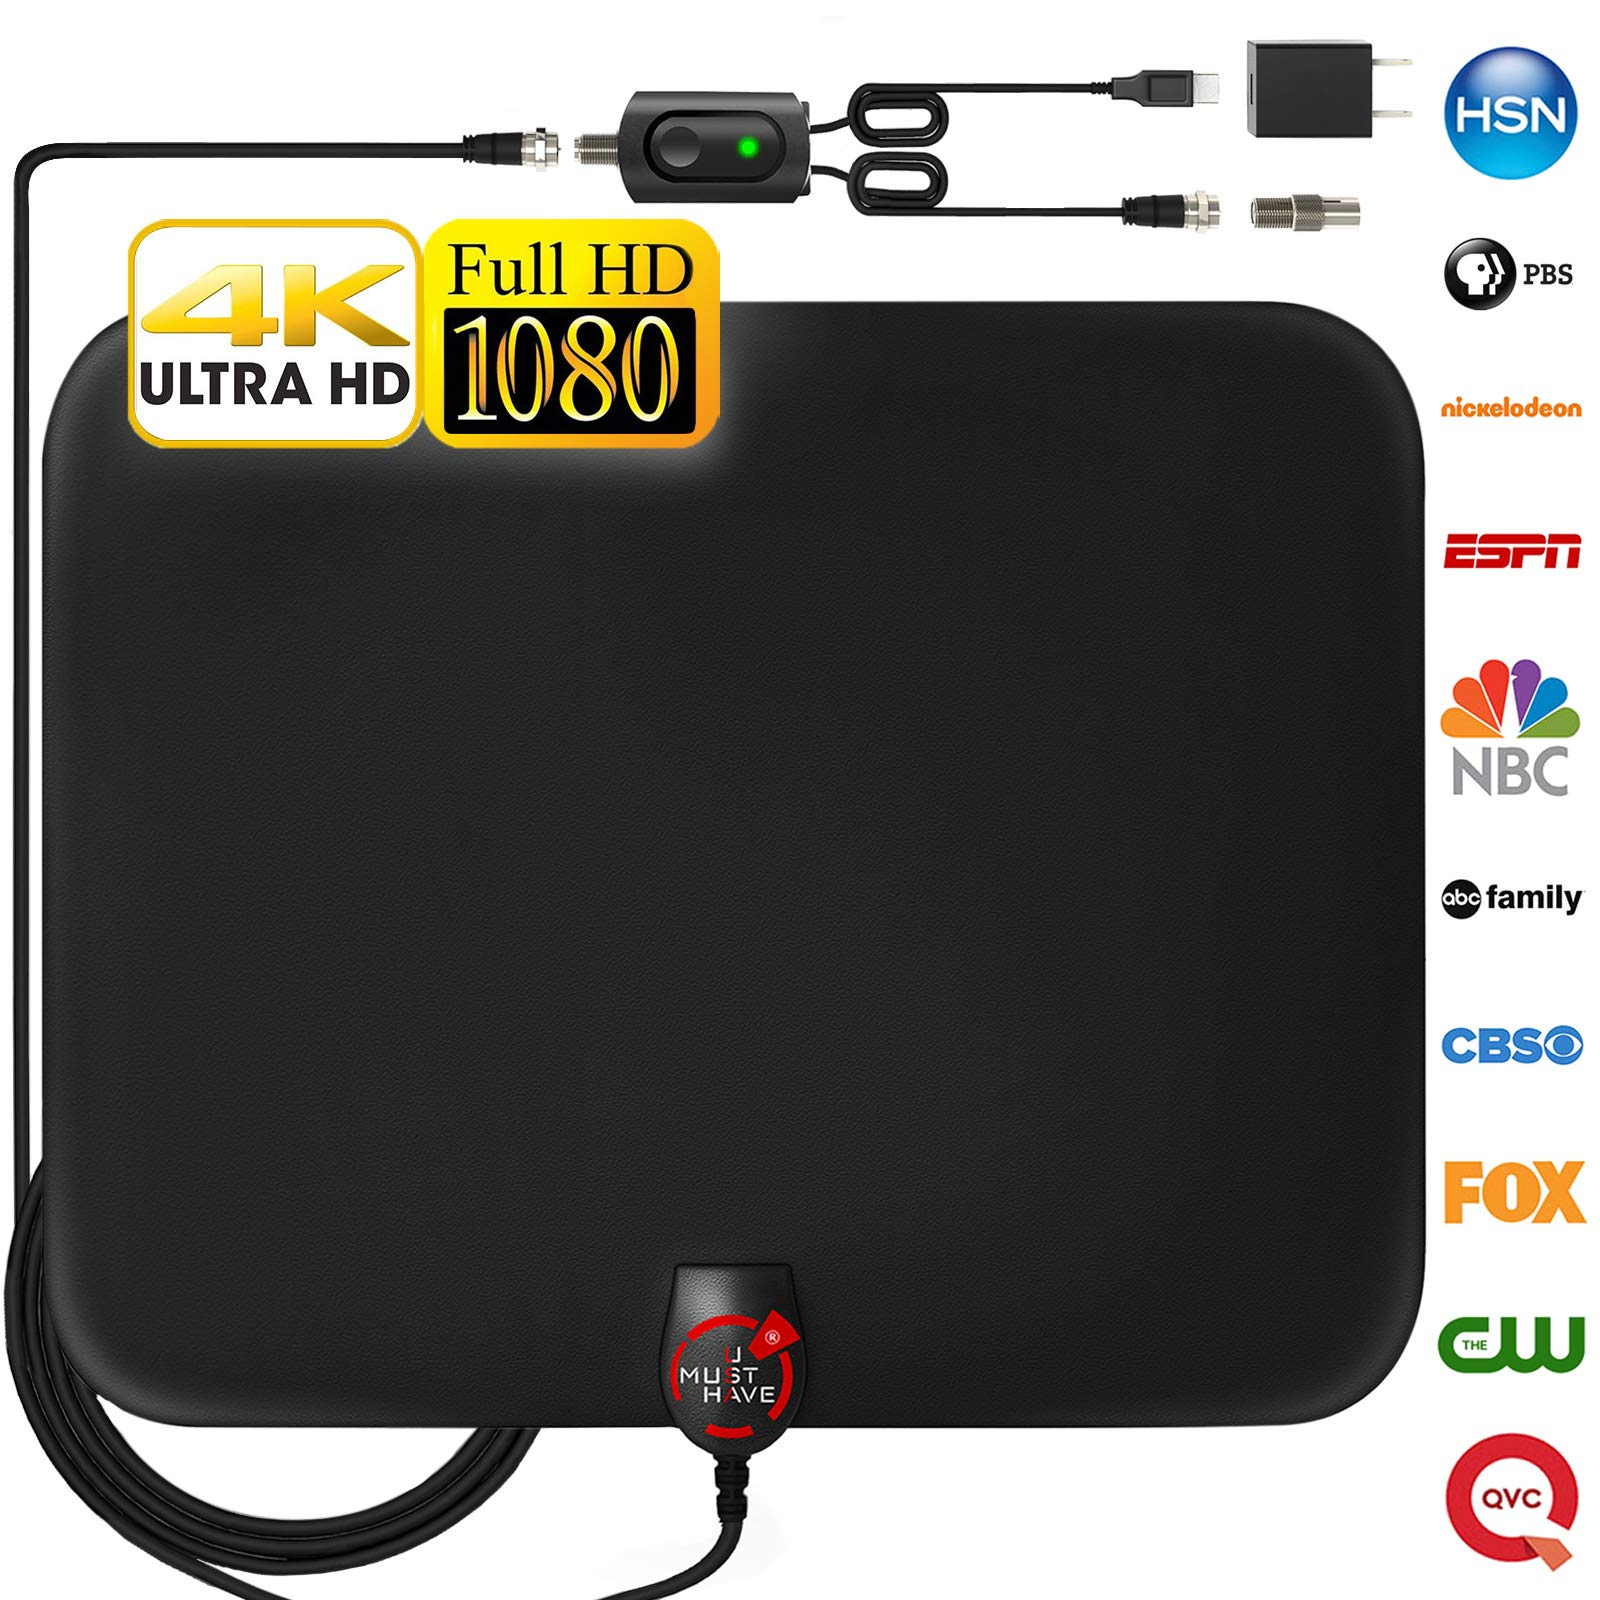 [2018 Newest] Amplified HD Digital TV Antenna Long 85 Miles Range – Support 4K 1080p & All Older TV's Indoor Powerful HDTV Amplifier Signal Booster - 18ft Coax Cable/Power Adapter by U Must Have